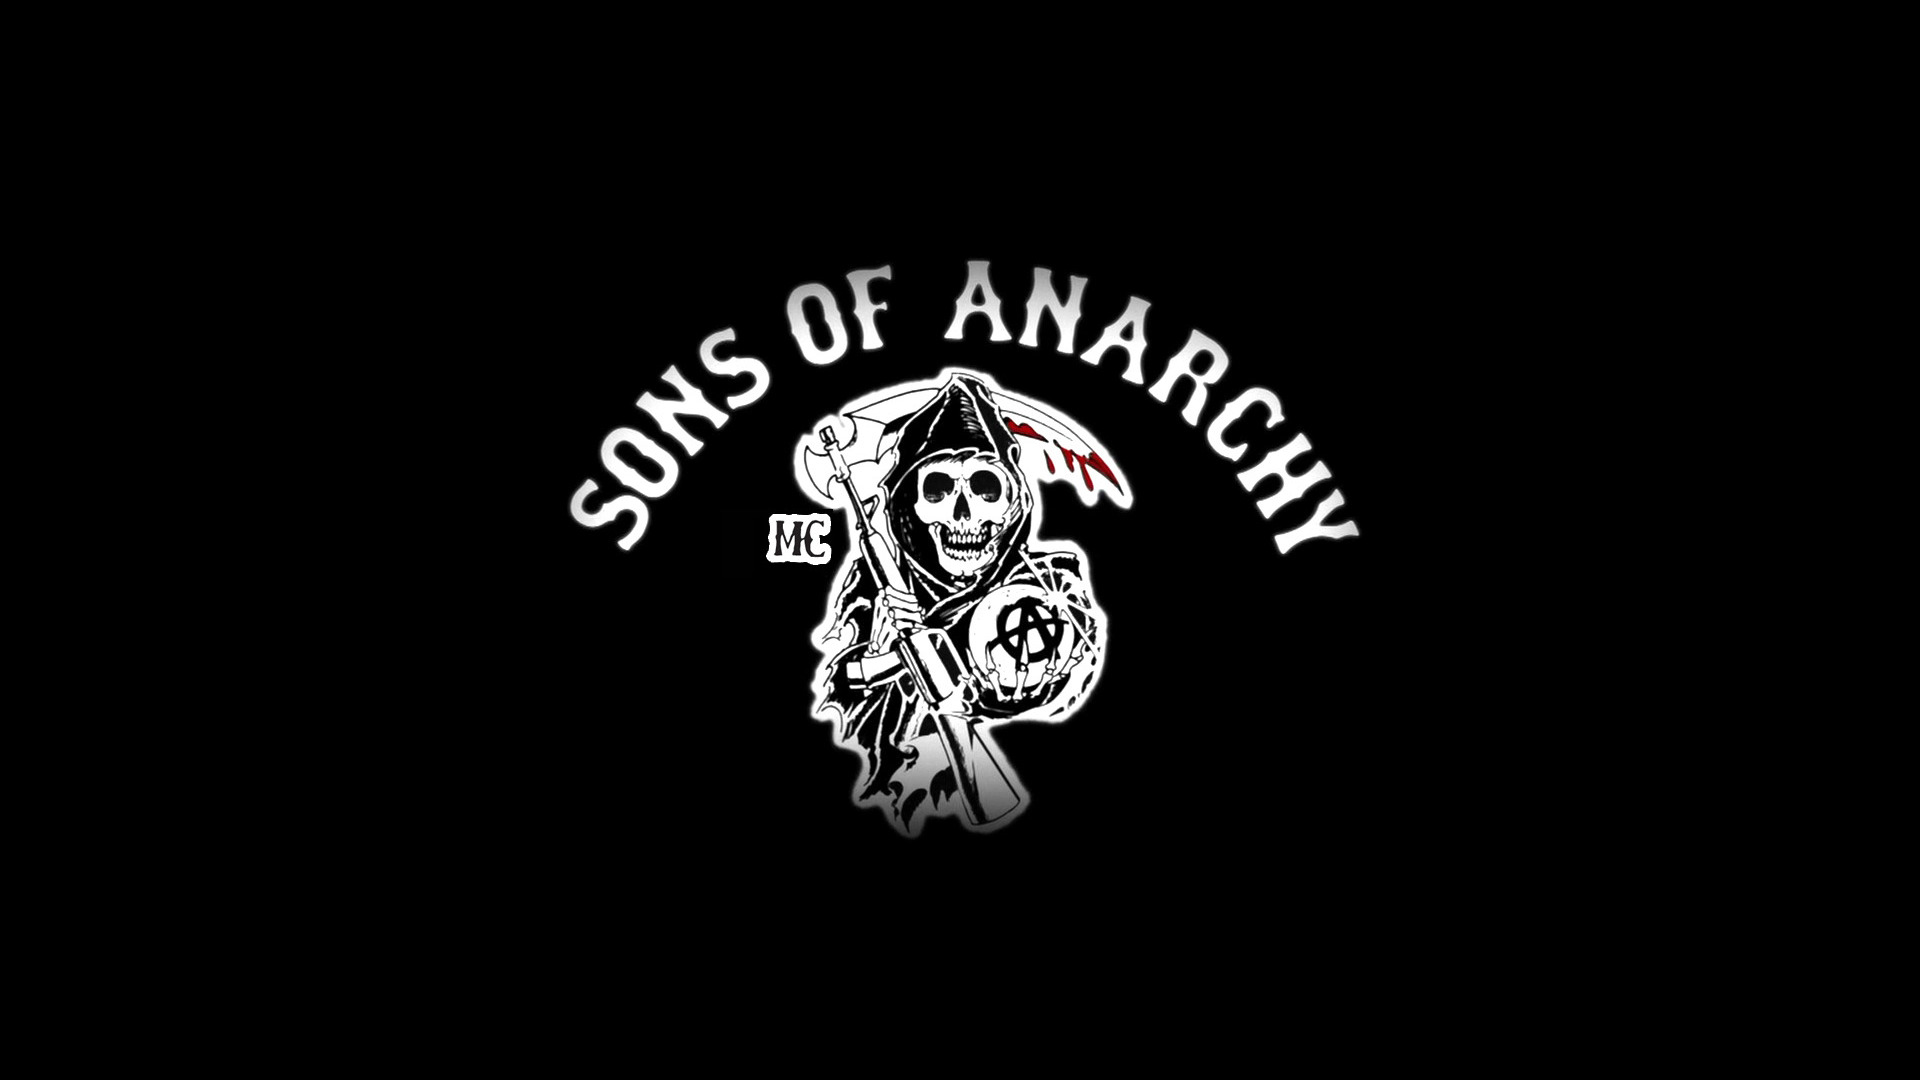 Sons Of Anarchy Backgrounds, Pictures, Images